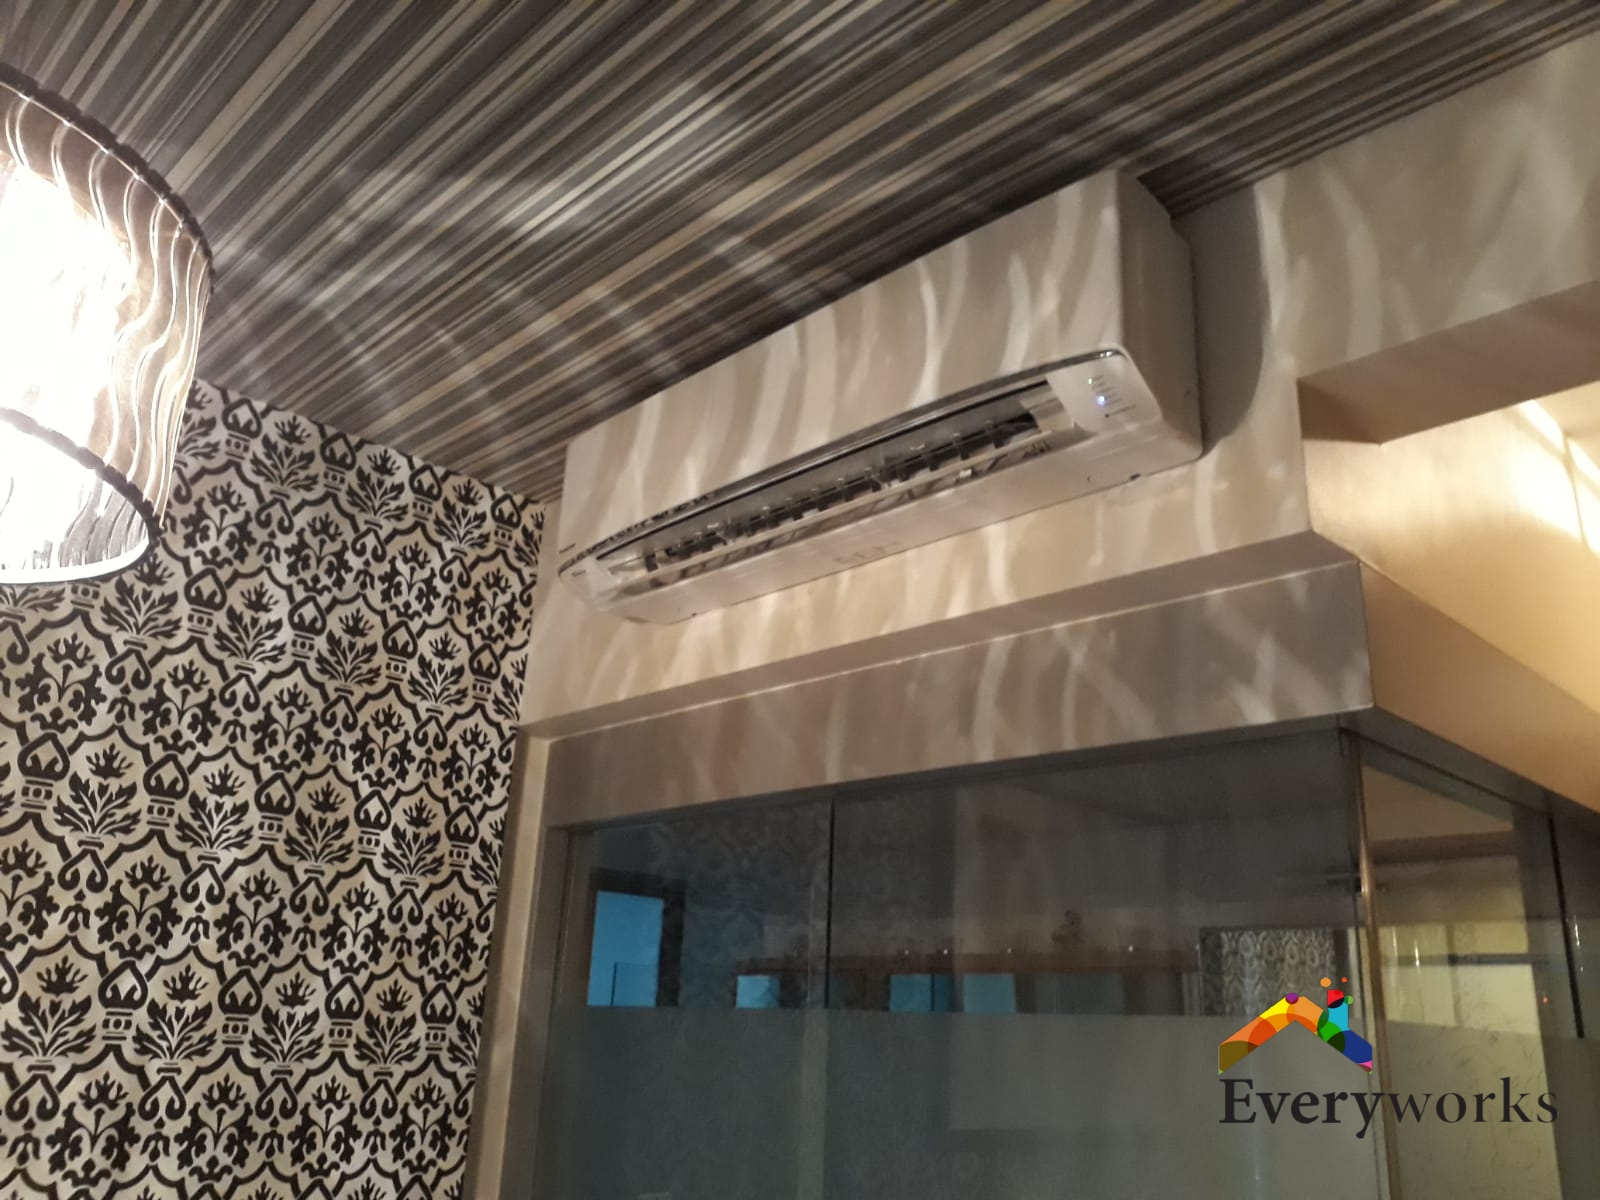 Panasonic System 3 Aircon Installation Aircon Servicing Singapore – Condo Orchard